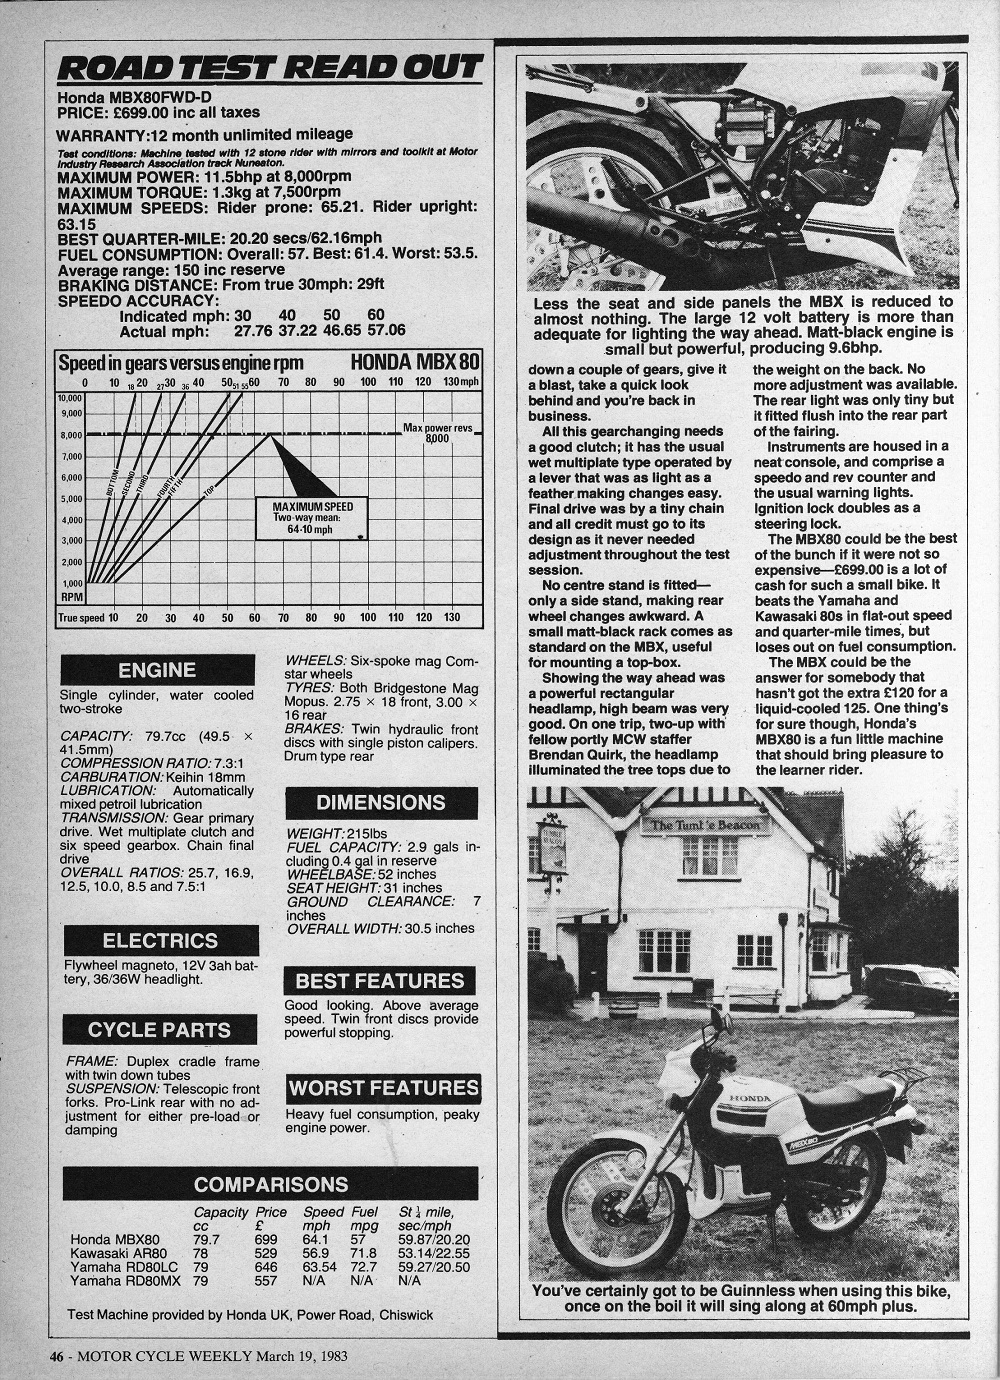 1983 Honda MBX80 road test.3.jpg